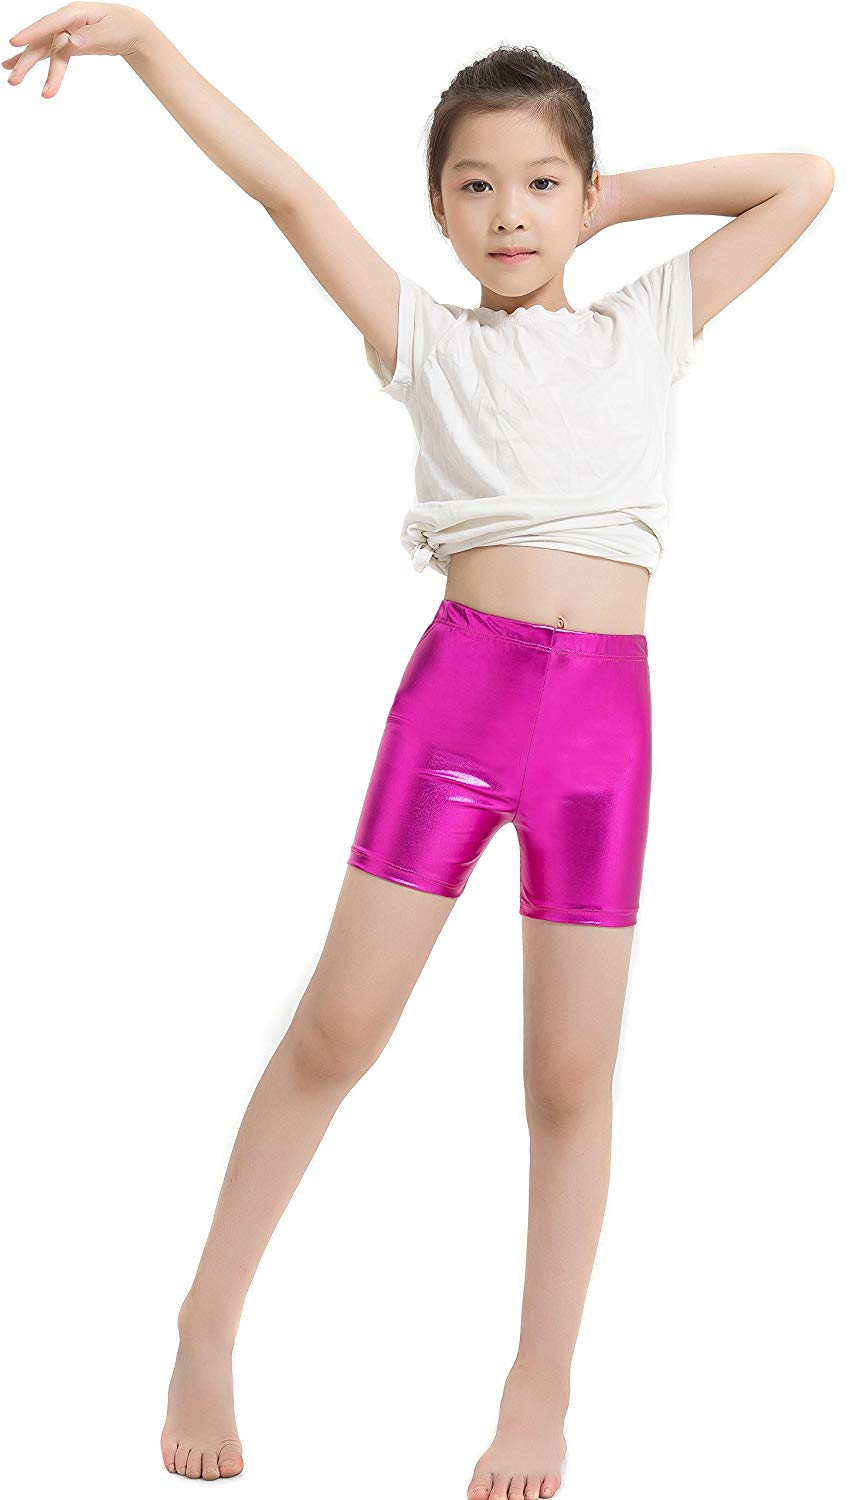 Girls Shiny Metallic High Waisted Gymnastics Dance Booty Shorts Work Out Stage Performance